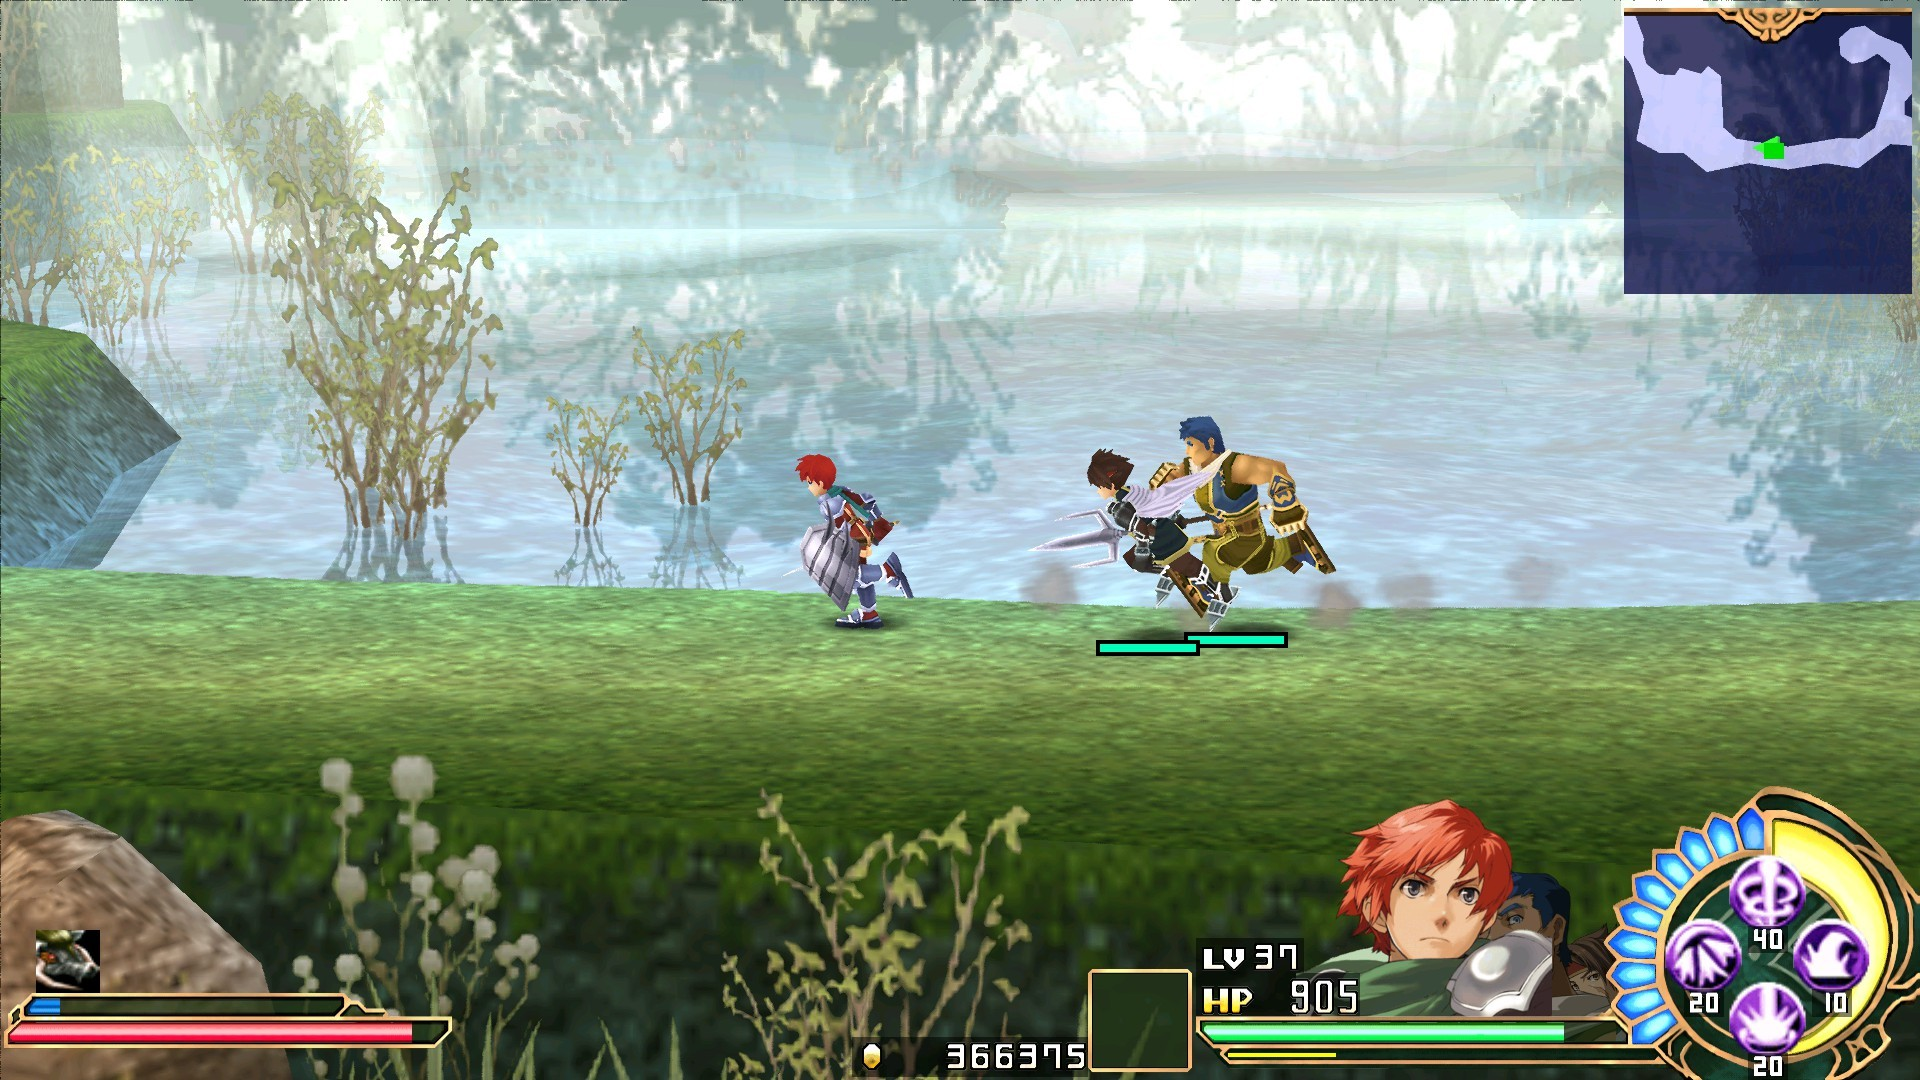 XSEED To Bring Ys7 To Windows Machines Via Steam, Summer 2017 1